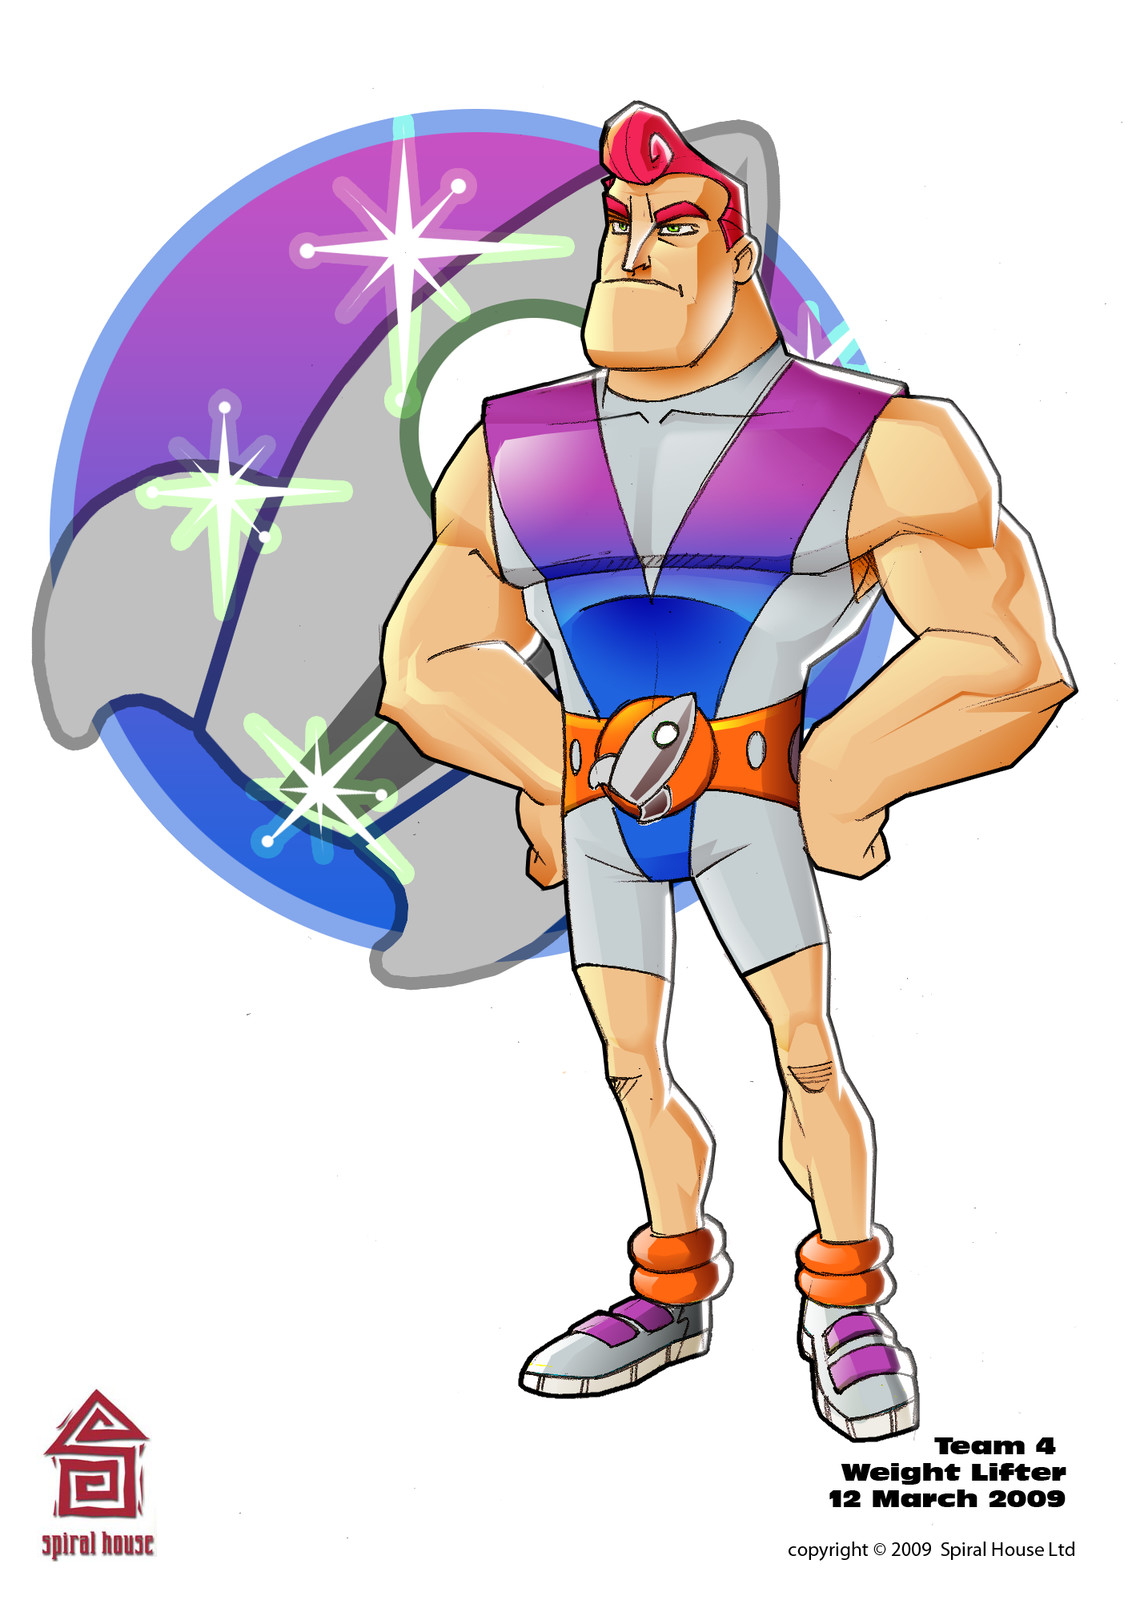 Colour concept of Team 4 Wrestler character for AR game.